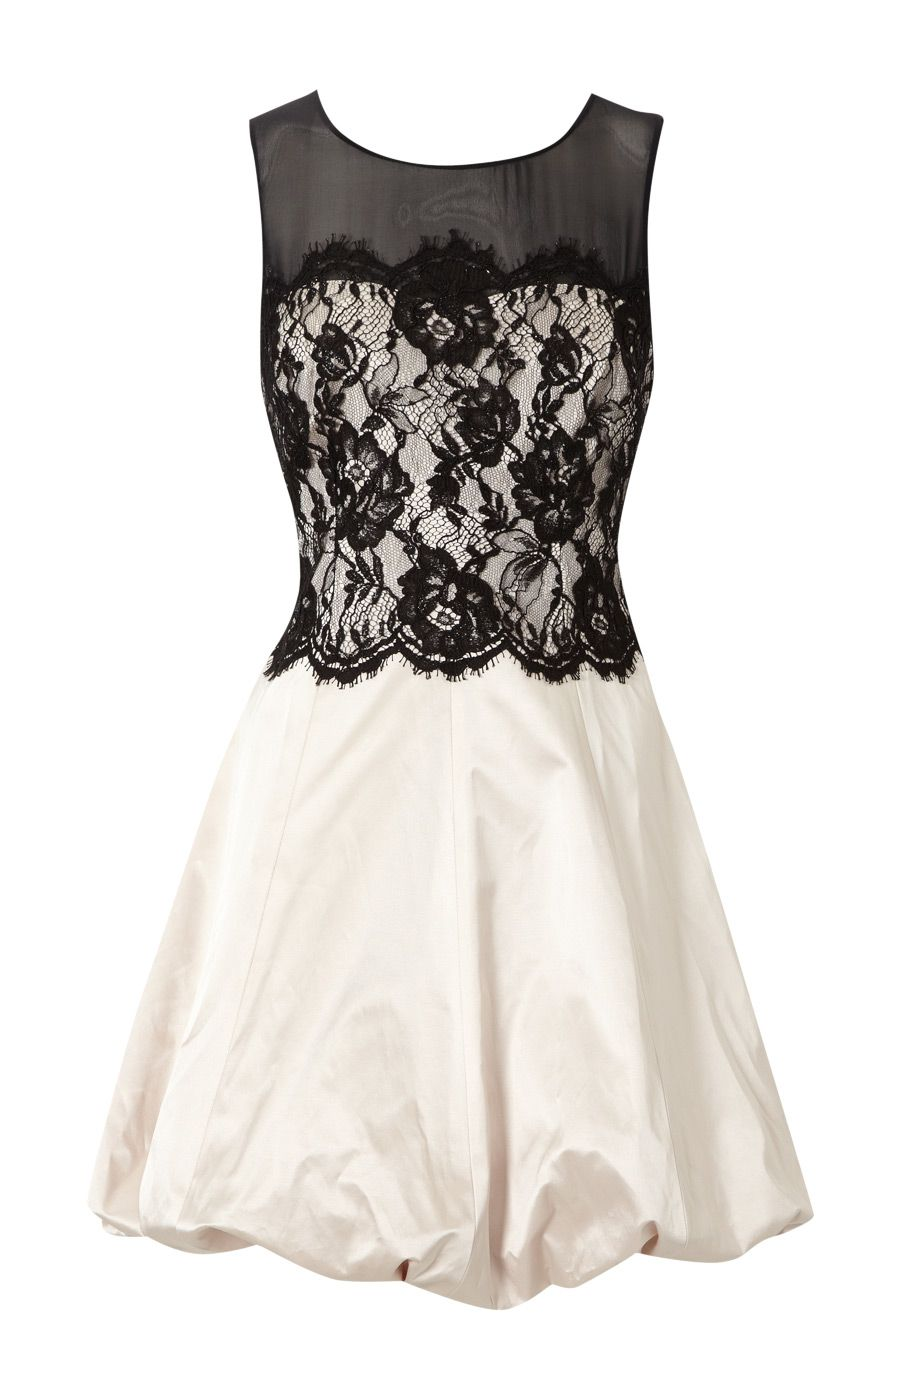 Wedding Black And White Lace Dress love this lace is gorgeous fashion pinterest cheap cocktail dresseswhite